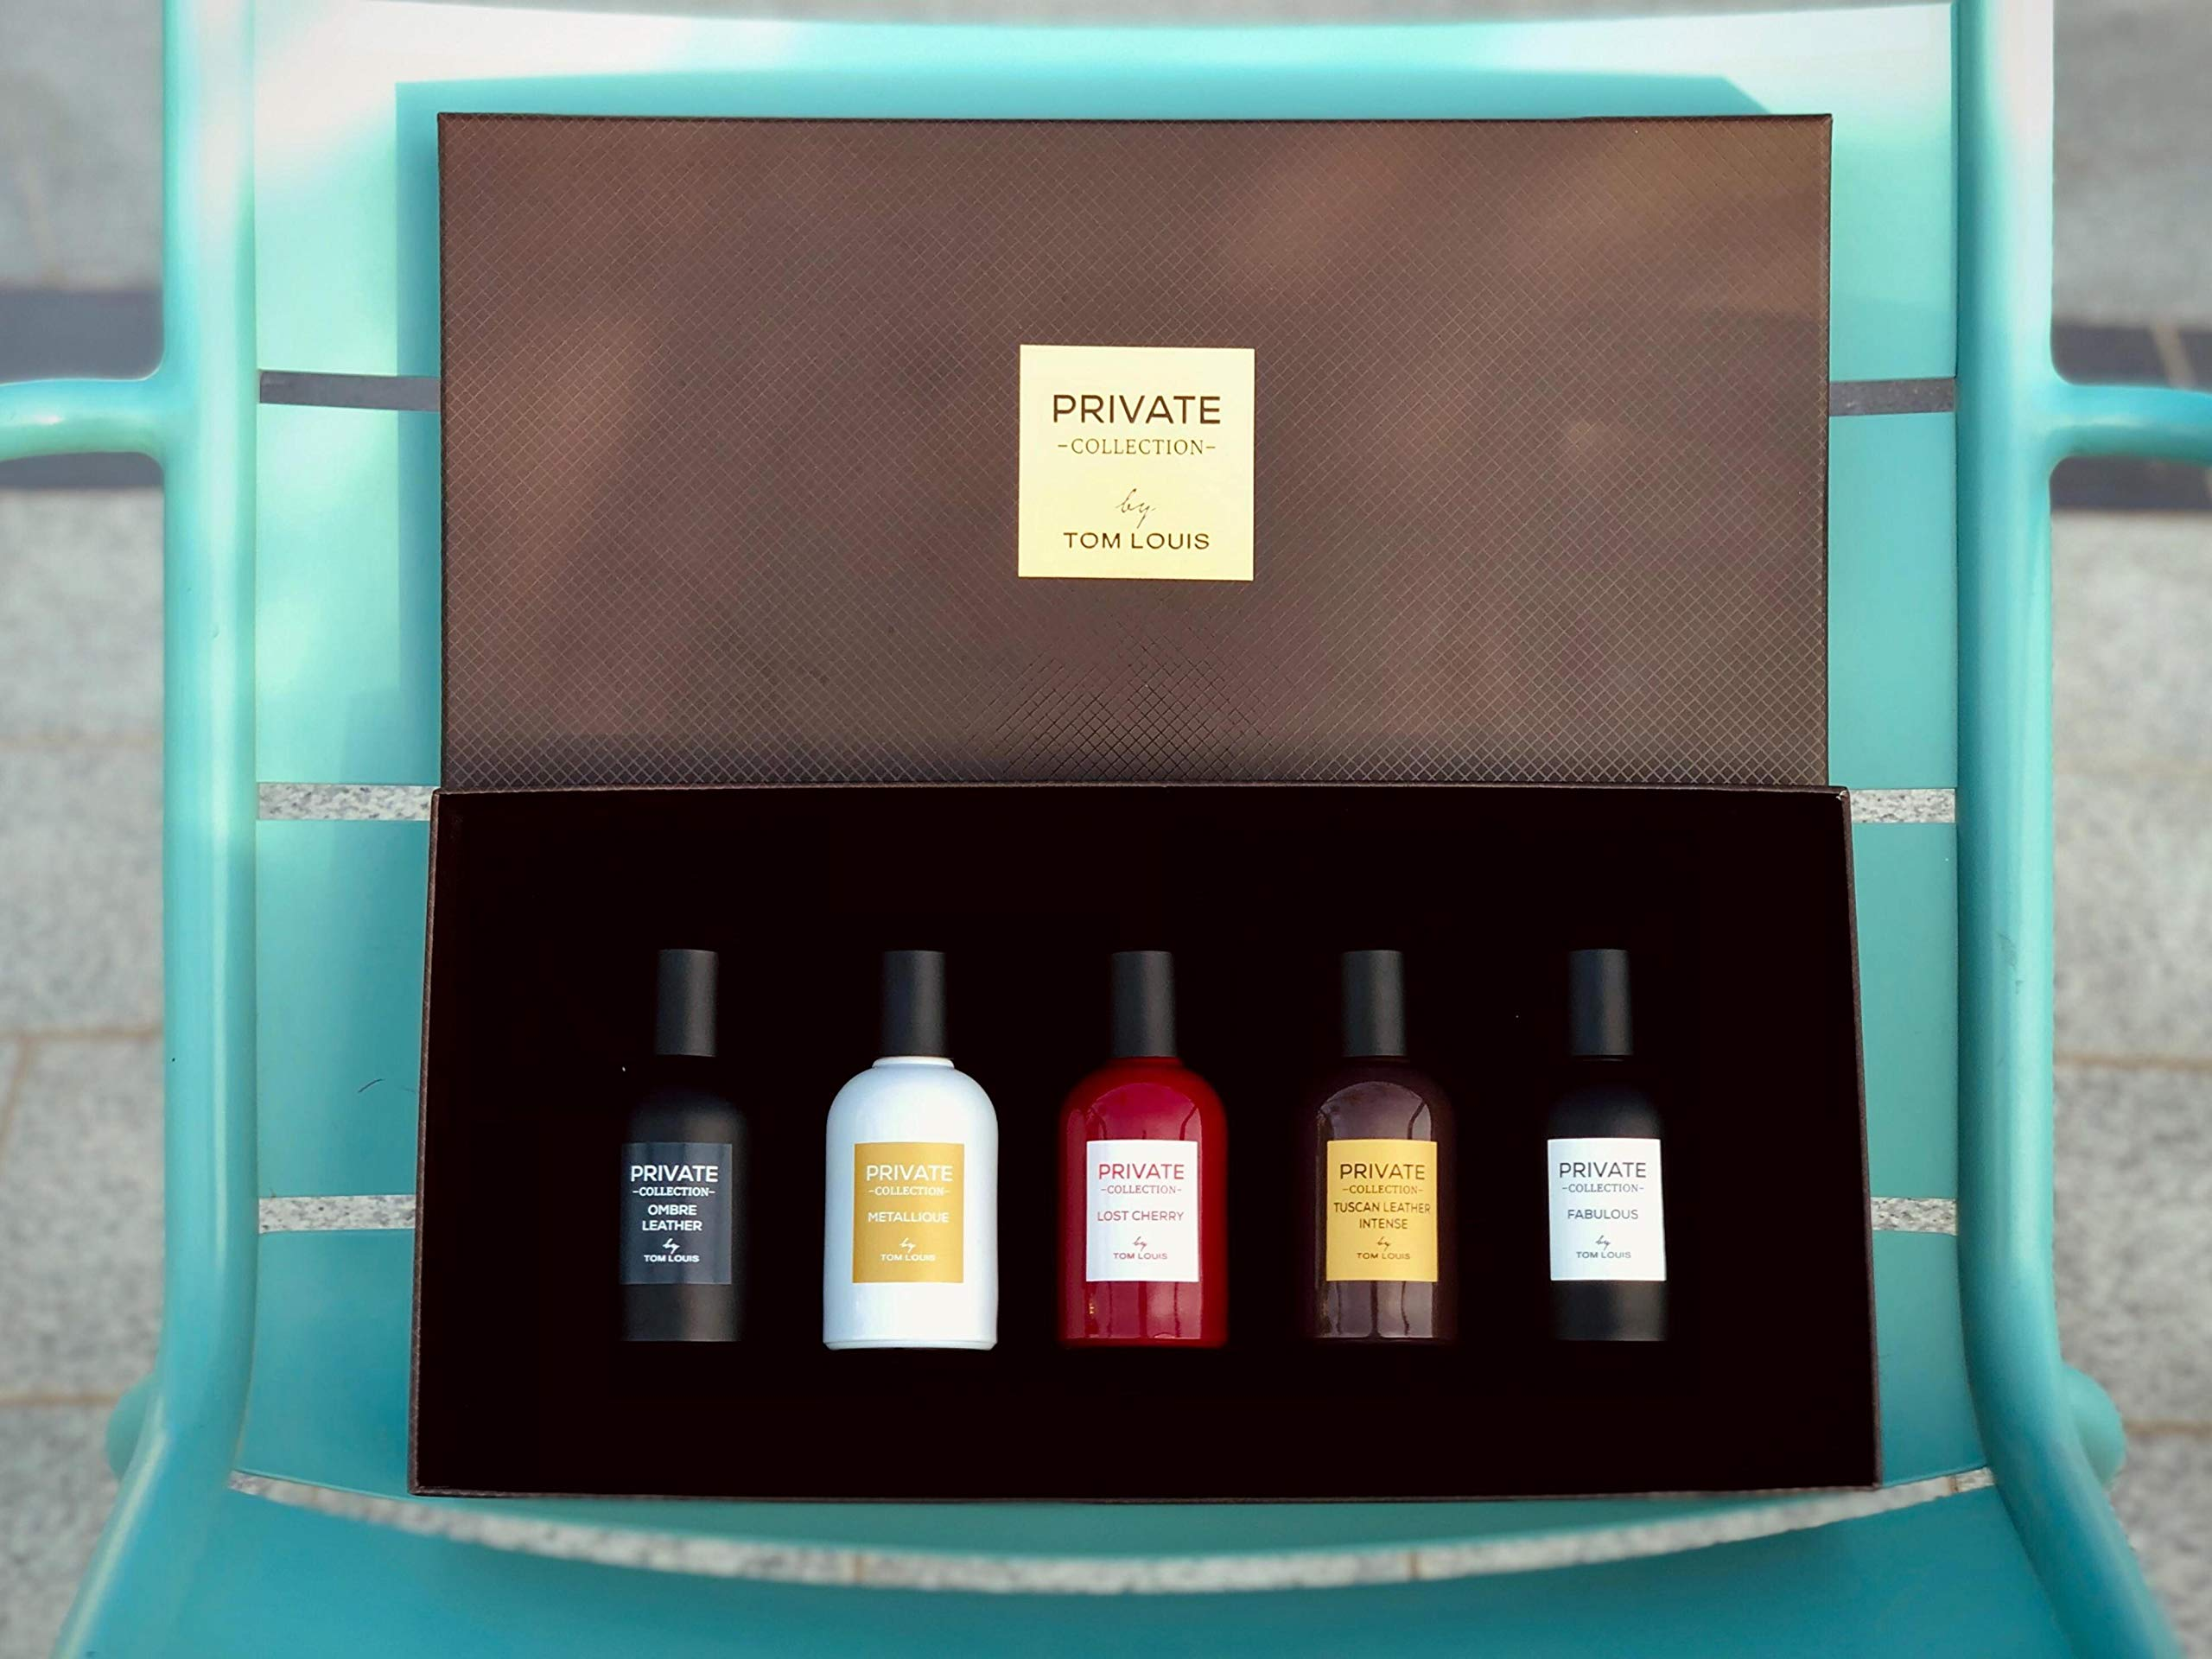 Perfume gift set Private Collection by my perfumes 5 unisex fragrances 50 ml Eau de parfum gift set for her and him spicy, floral, musky perfumes Gift for women and men